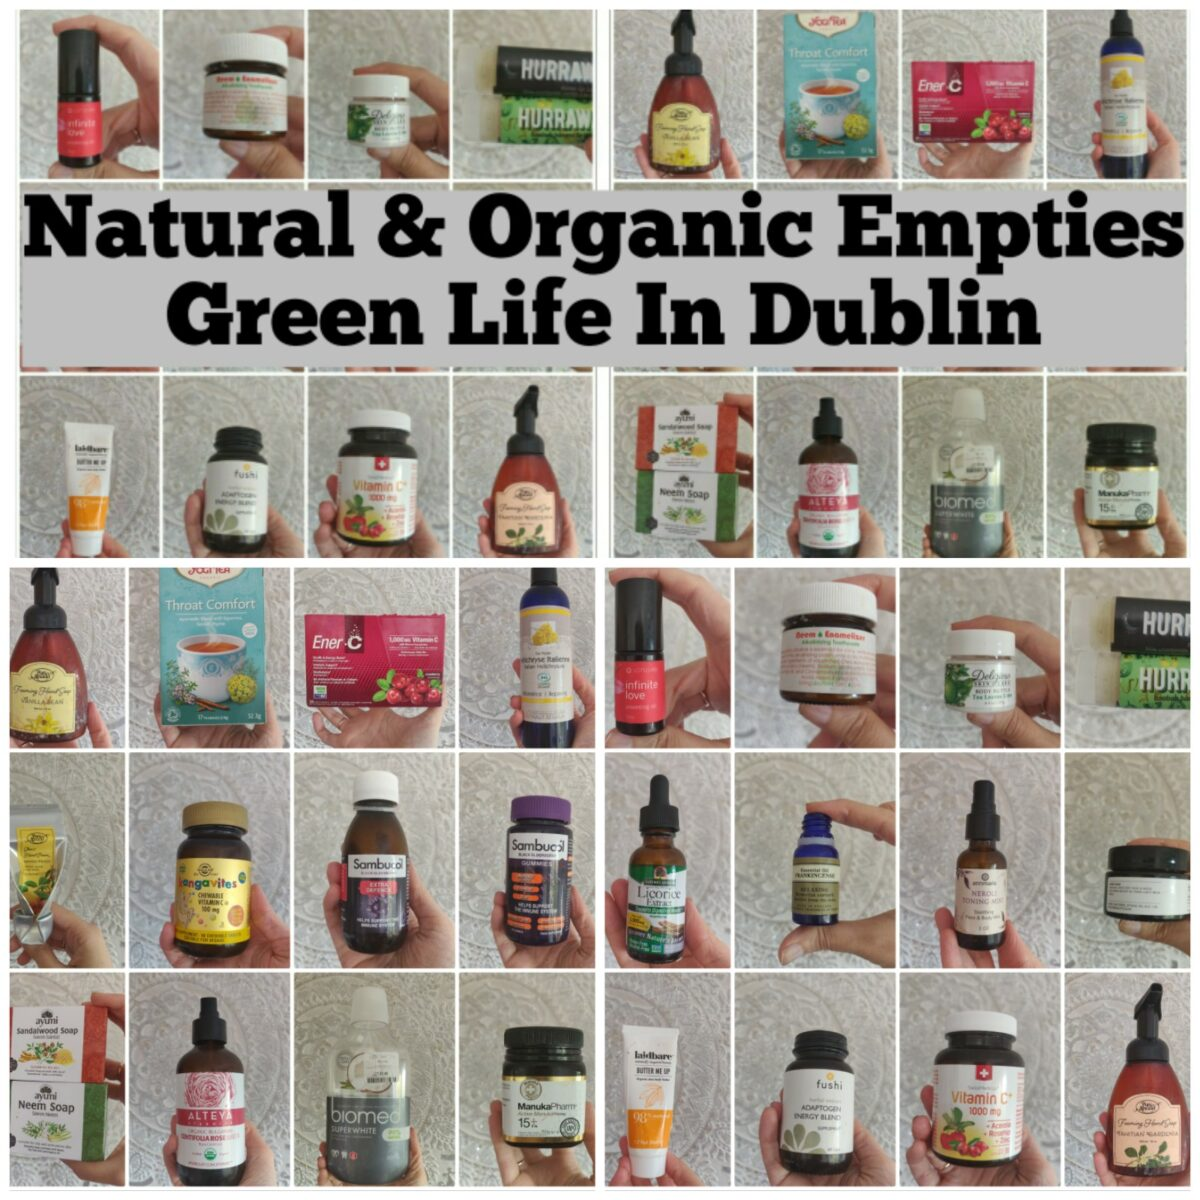 Natural & Organic Empties October 2020 – Green Life In Dublin